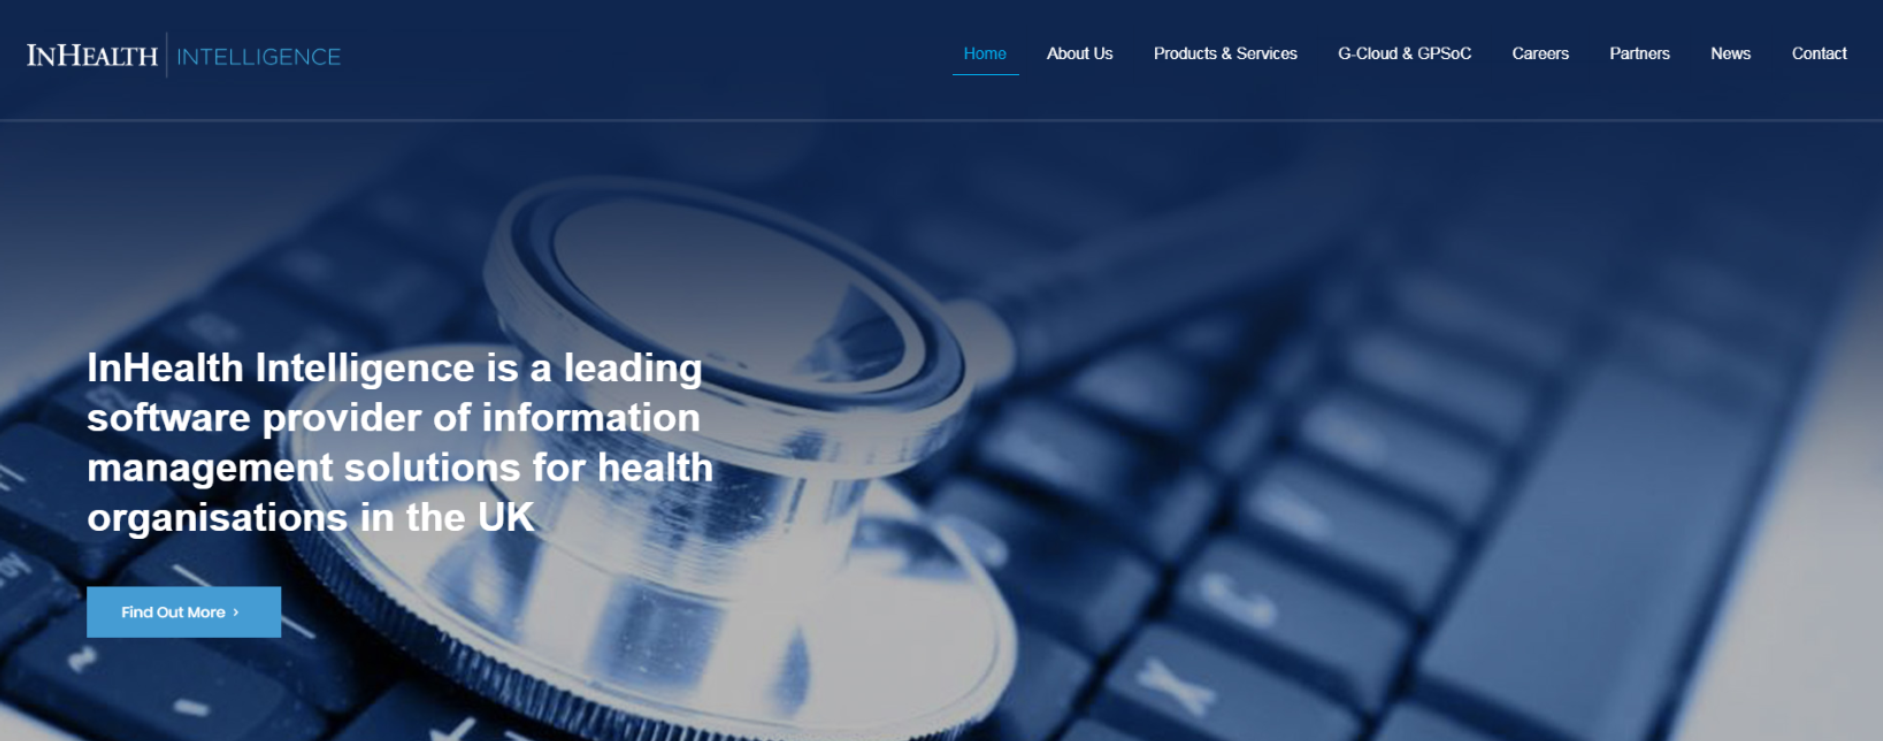 InHealth Intelligence